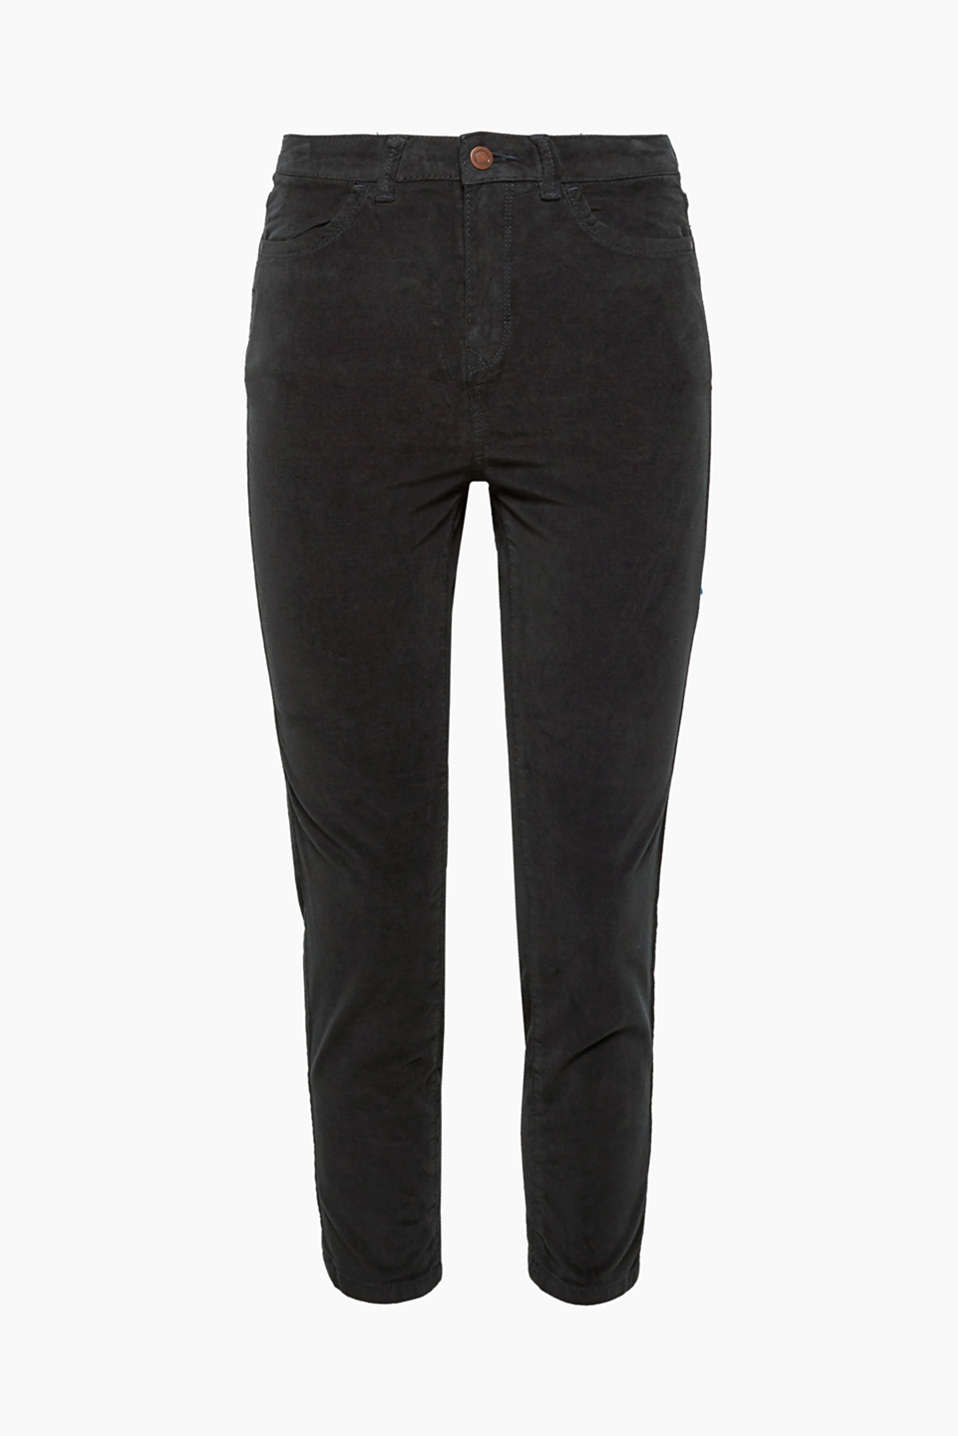 In the trend material of the season: fashionably cropped four pocket trousers in an exquisite stretchy velvet.